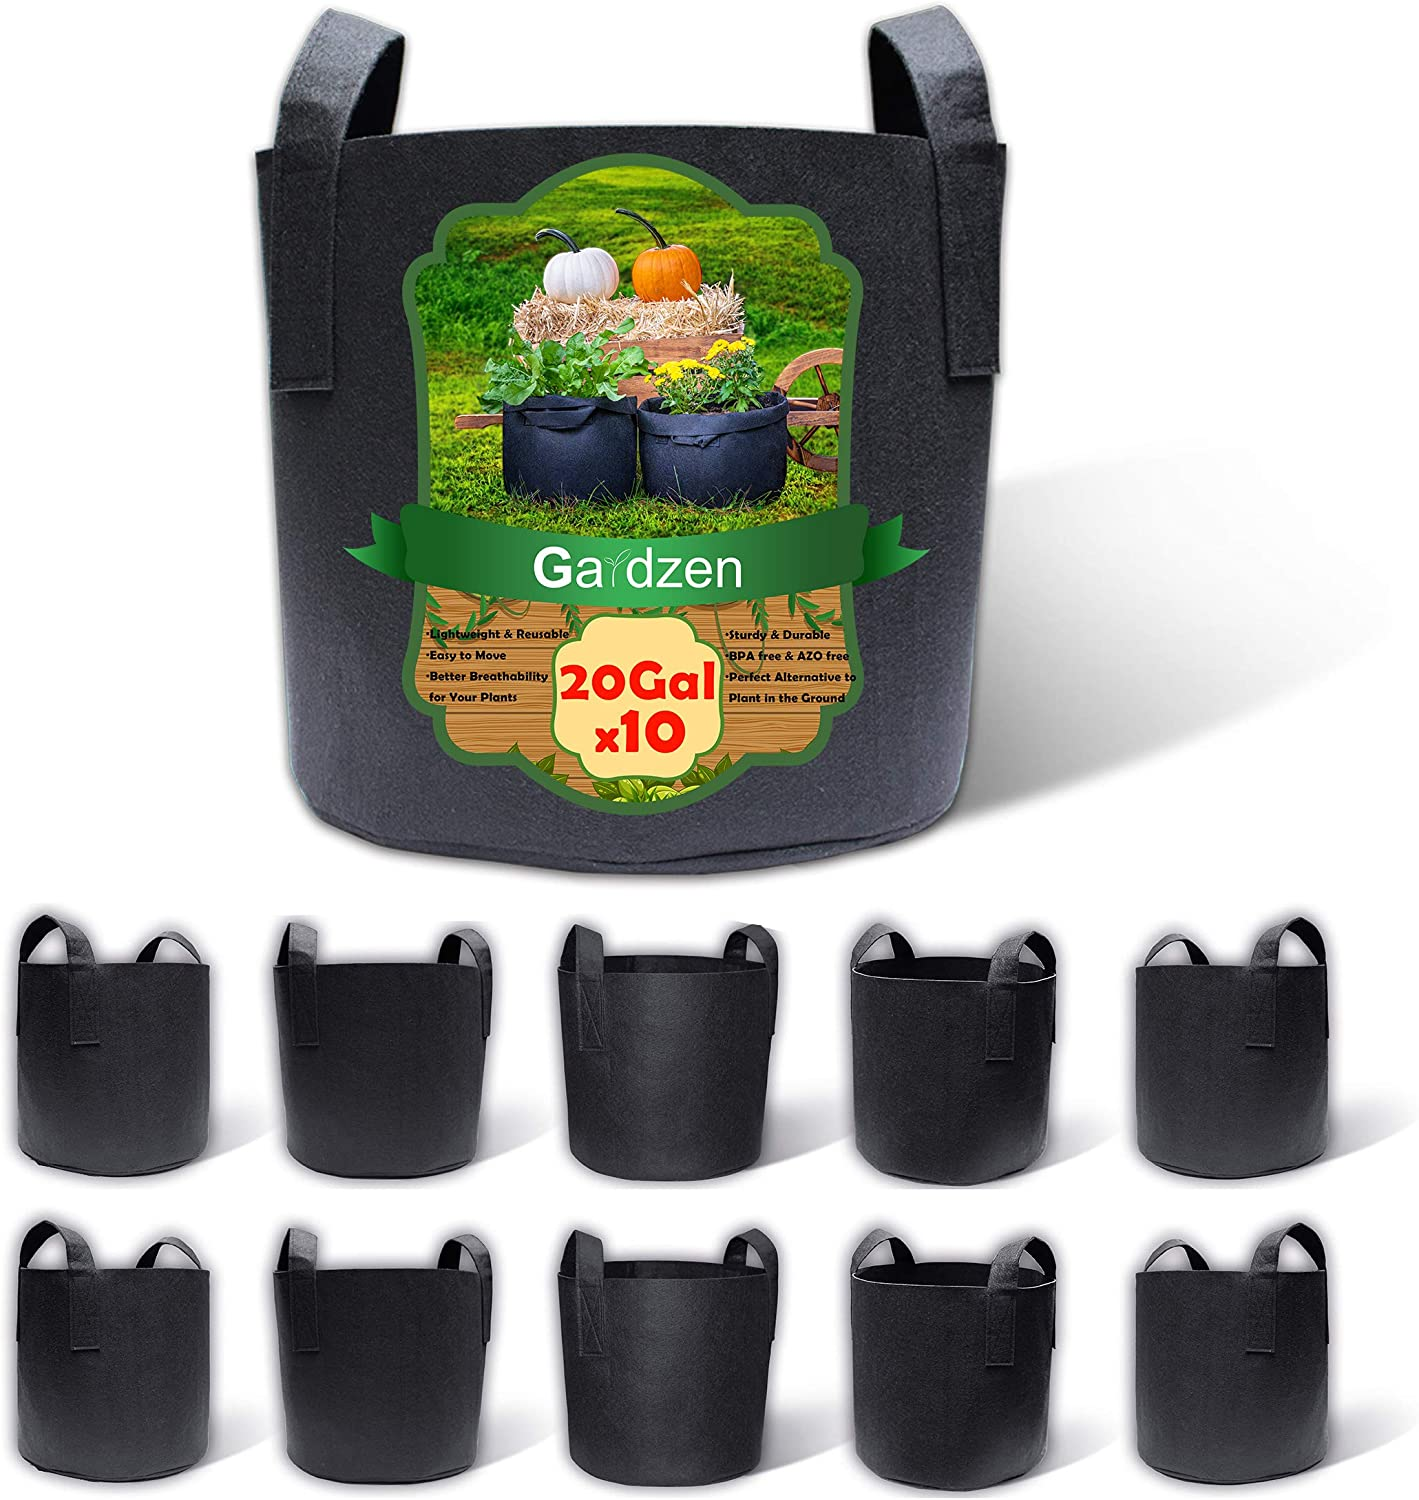 Gardzen 10-Pack 20 Gallon Grow Special price for a limited time New products world's highest quality popular Bags Fabric Pots Aeration H with